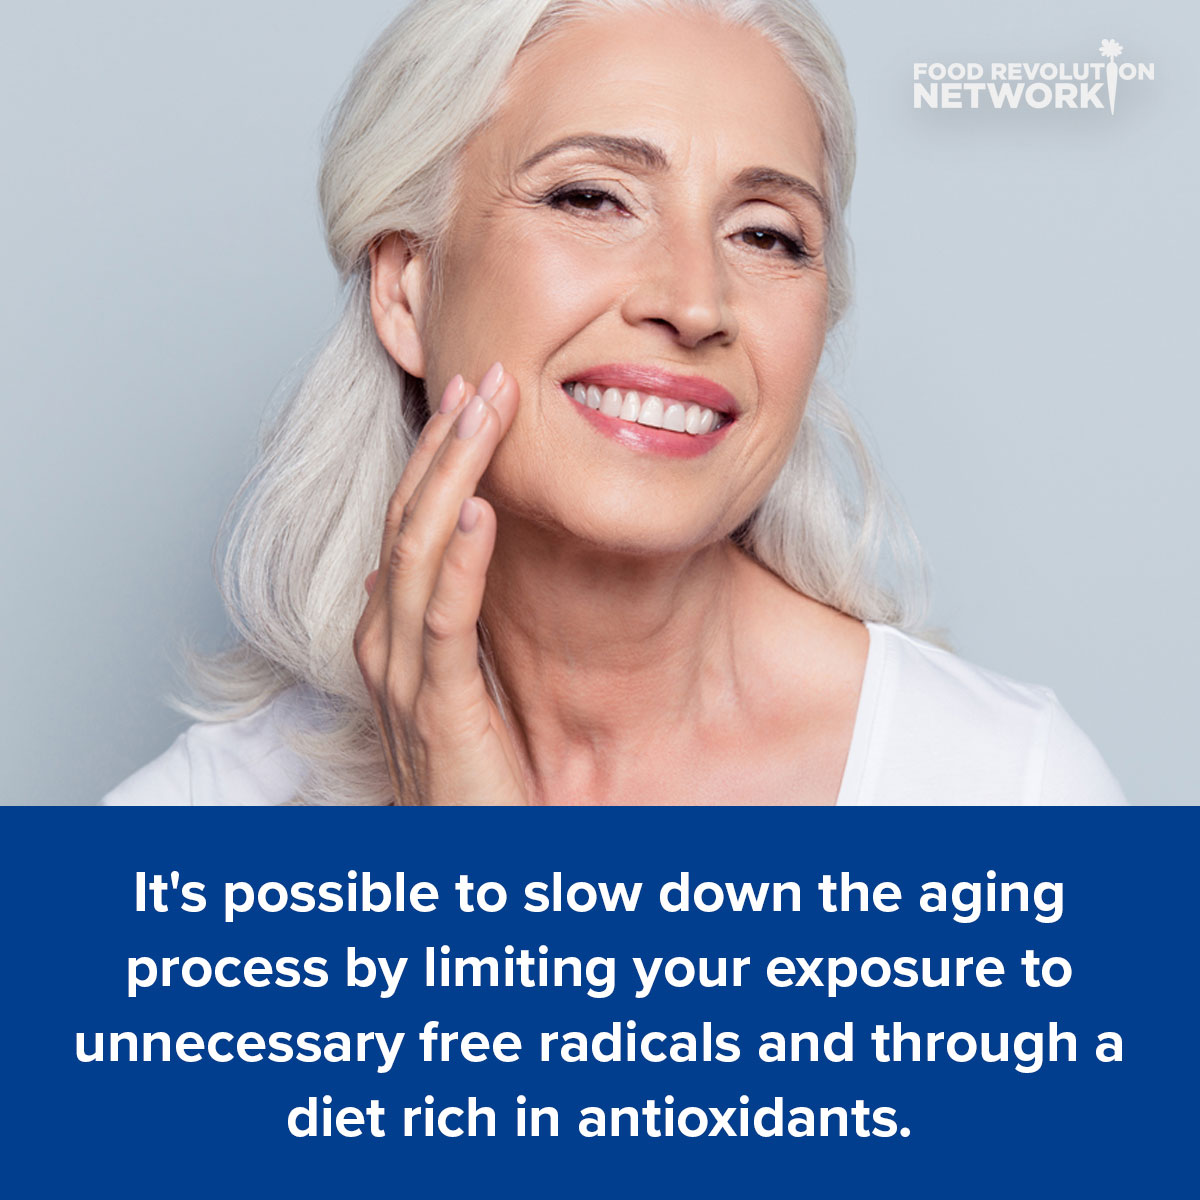 It's possible to slow down the aging process by limiting your exposure to unnecessary free radicals and through a diet rich in antioxidants.